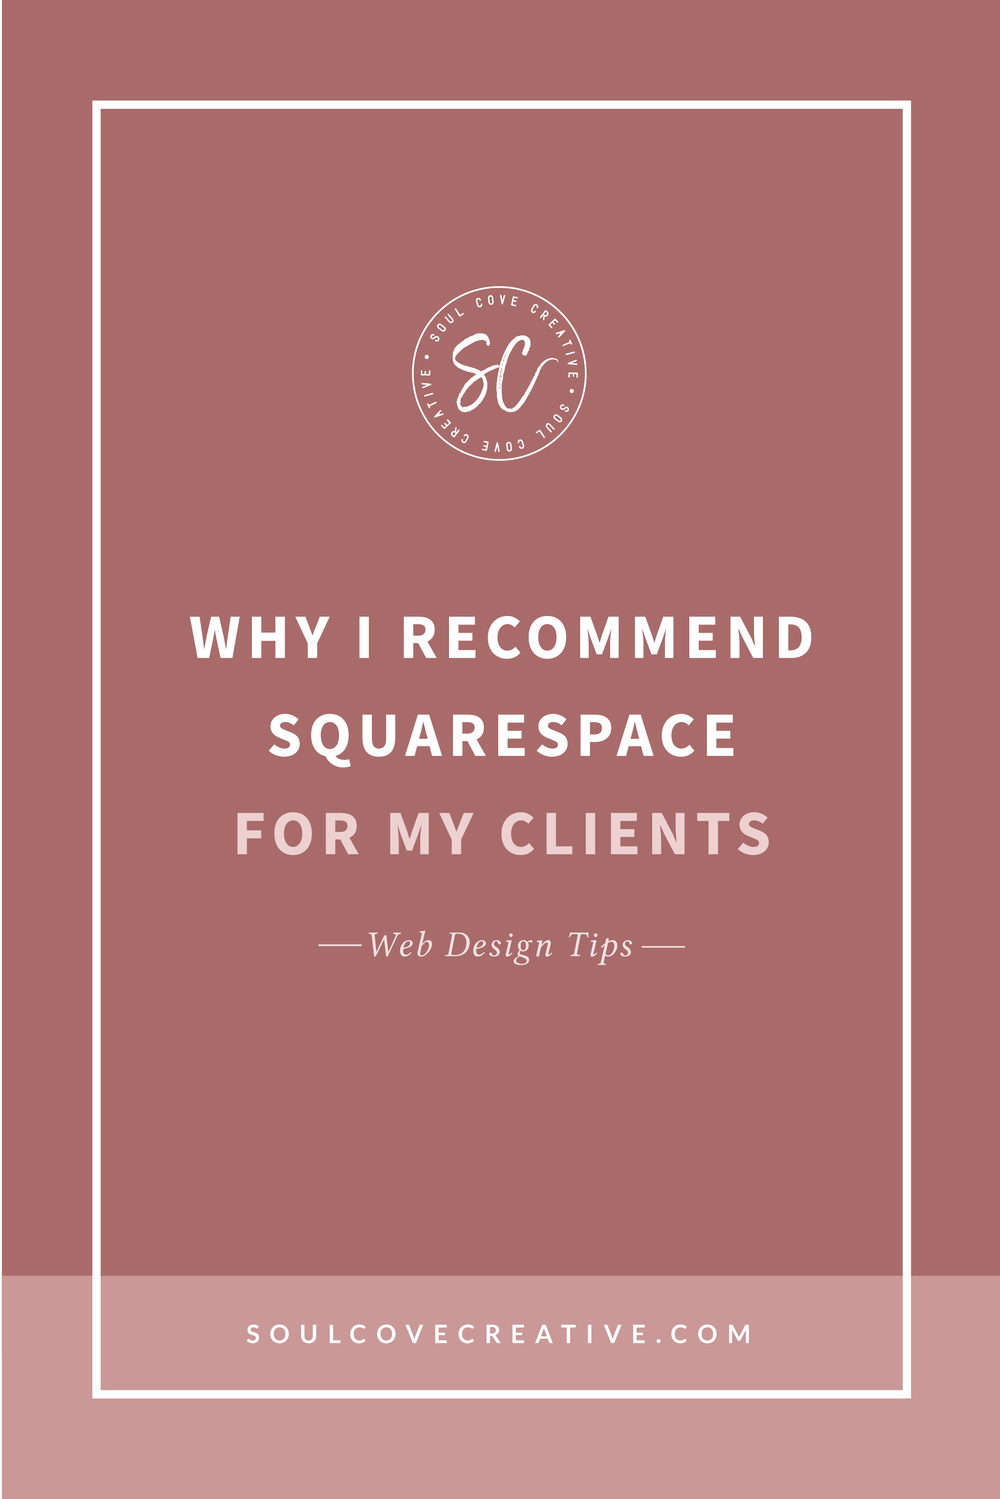 Why I Recommend Squarespace for My Clients